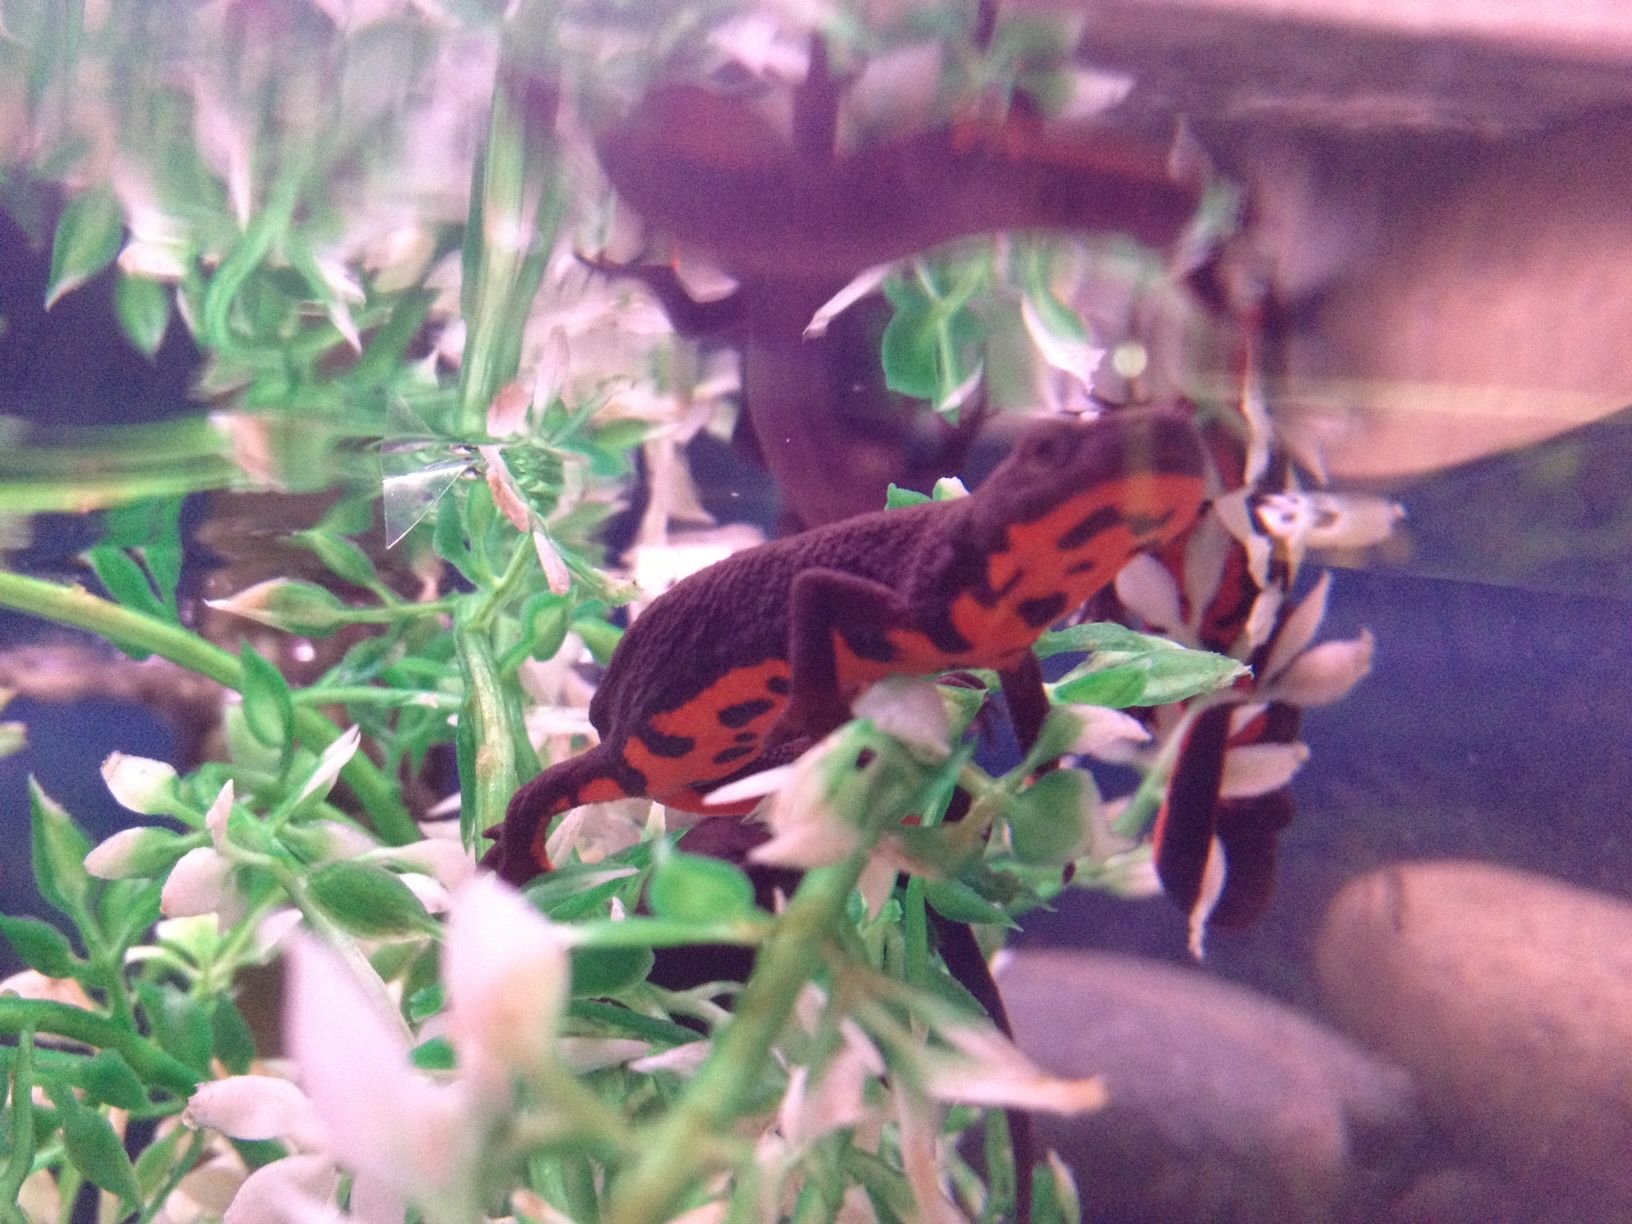 Common Name: Chinese Fire Bellied Newts